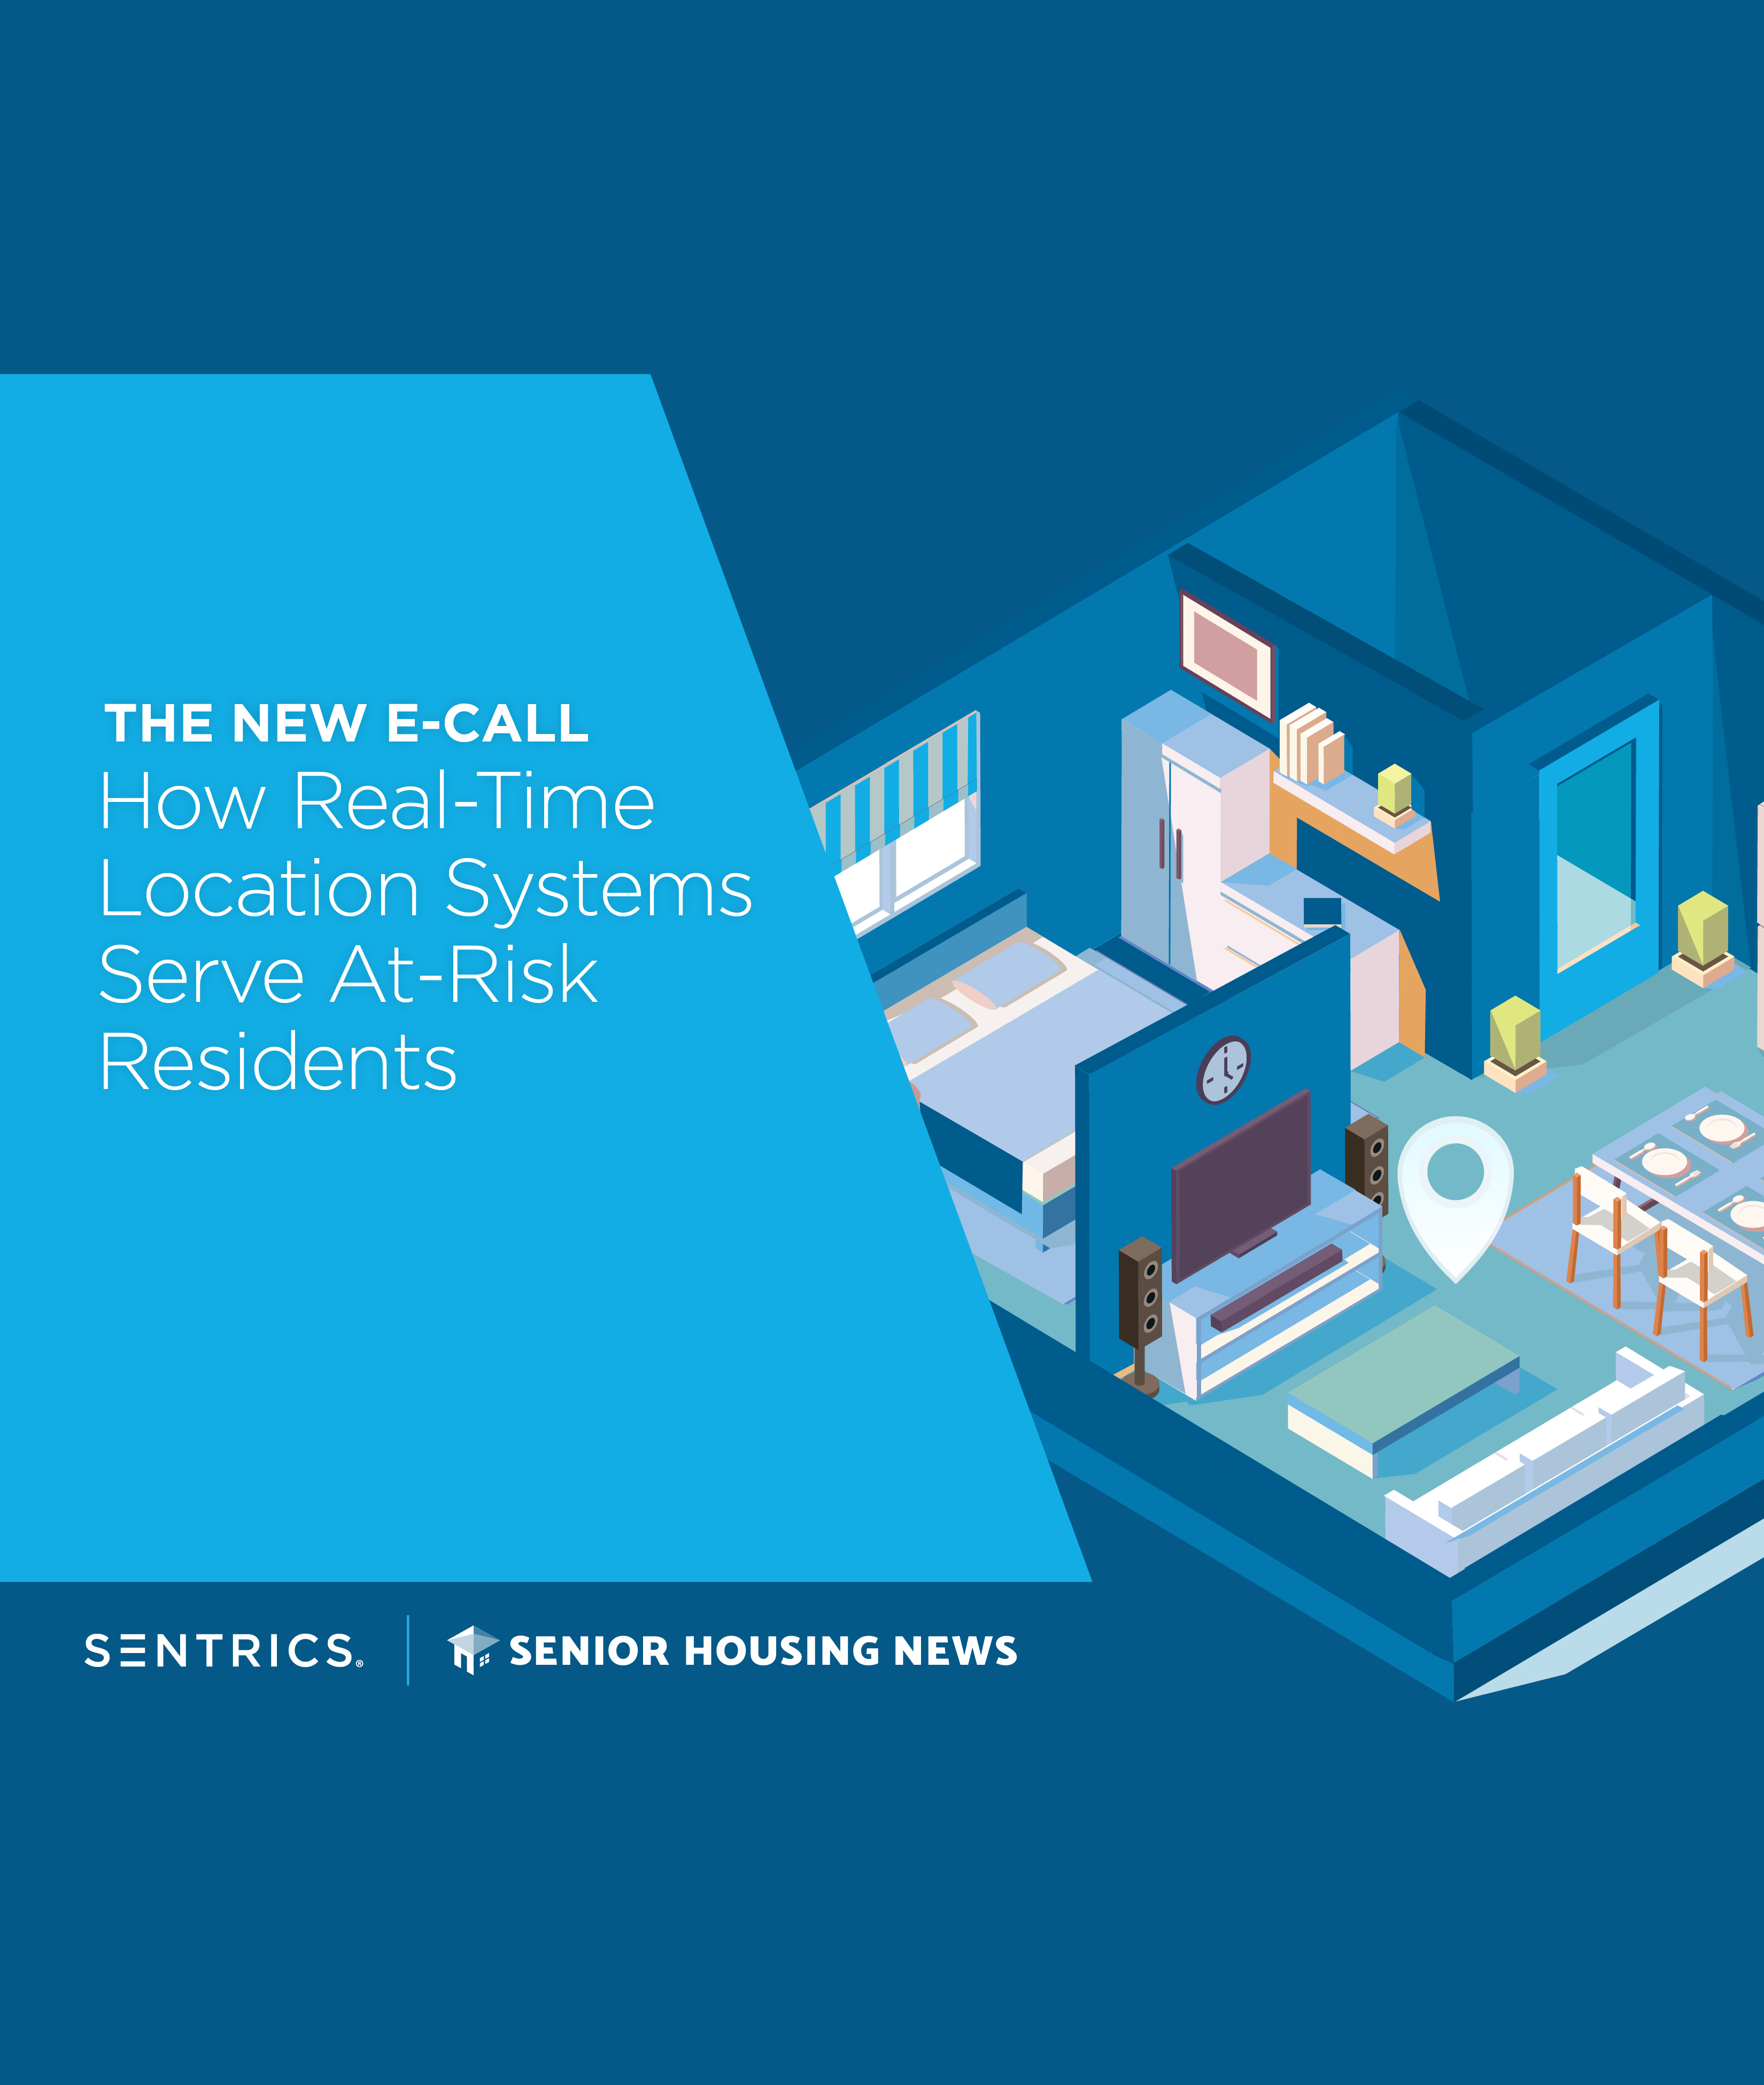 [eBook] The New E-Call: How Real-Time Location Systems Serve At-Risk Residents